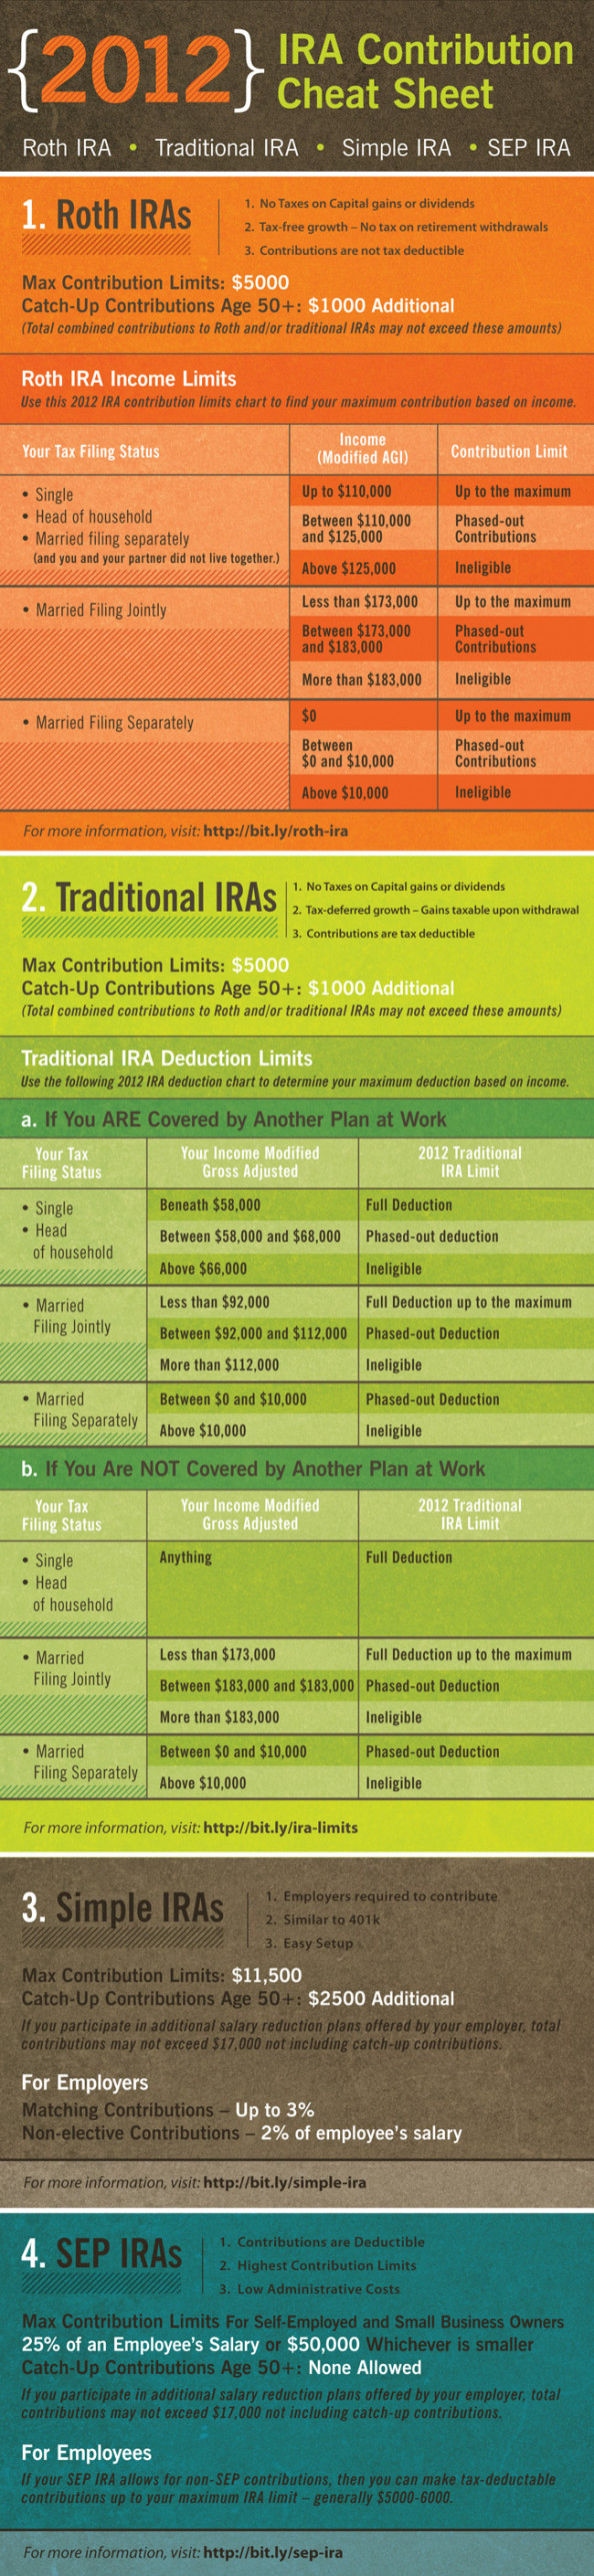 Ultimate IRA Cheat Sheet Infographic